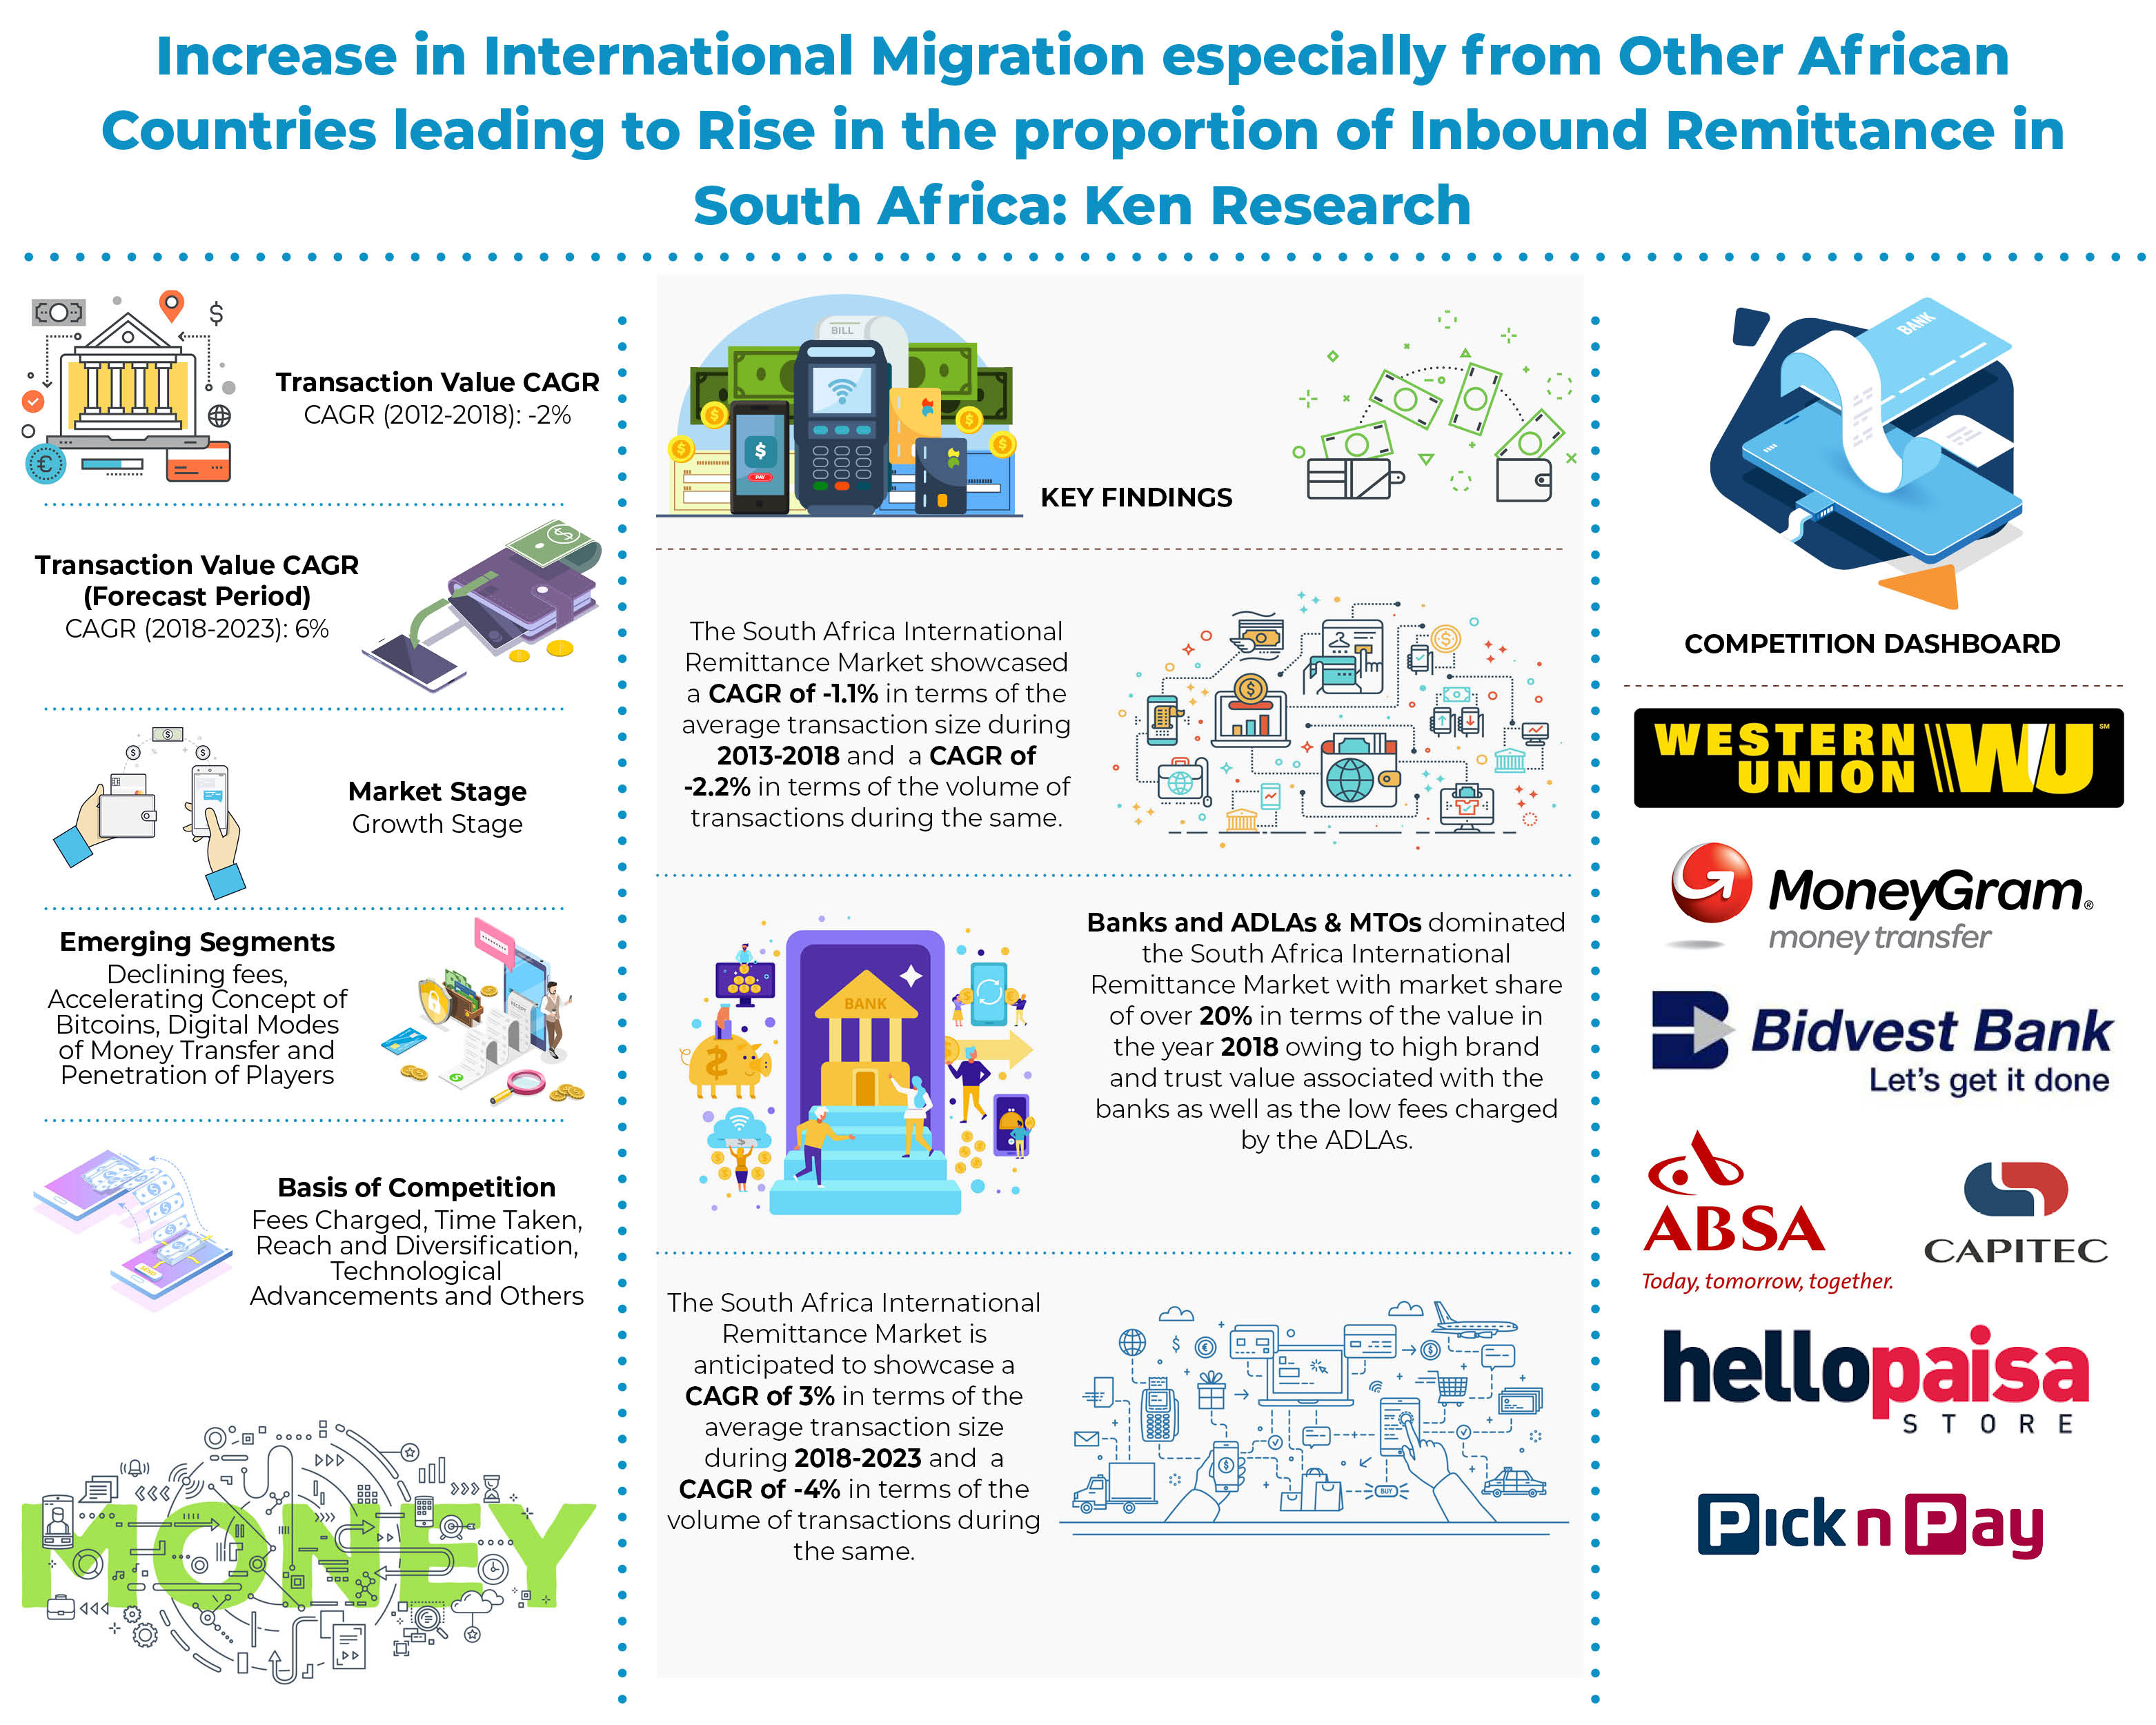 South Africa International Remittance Market